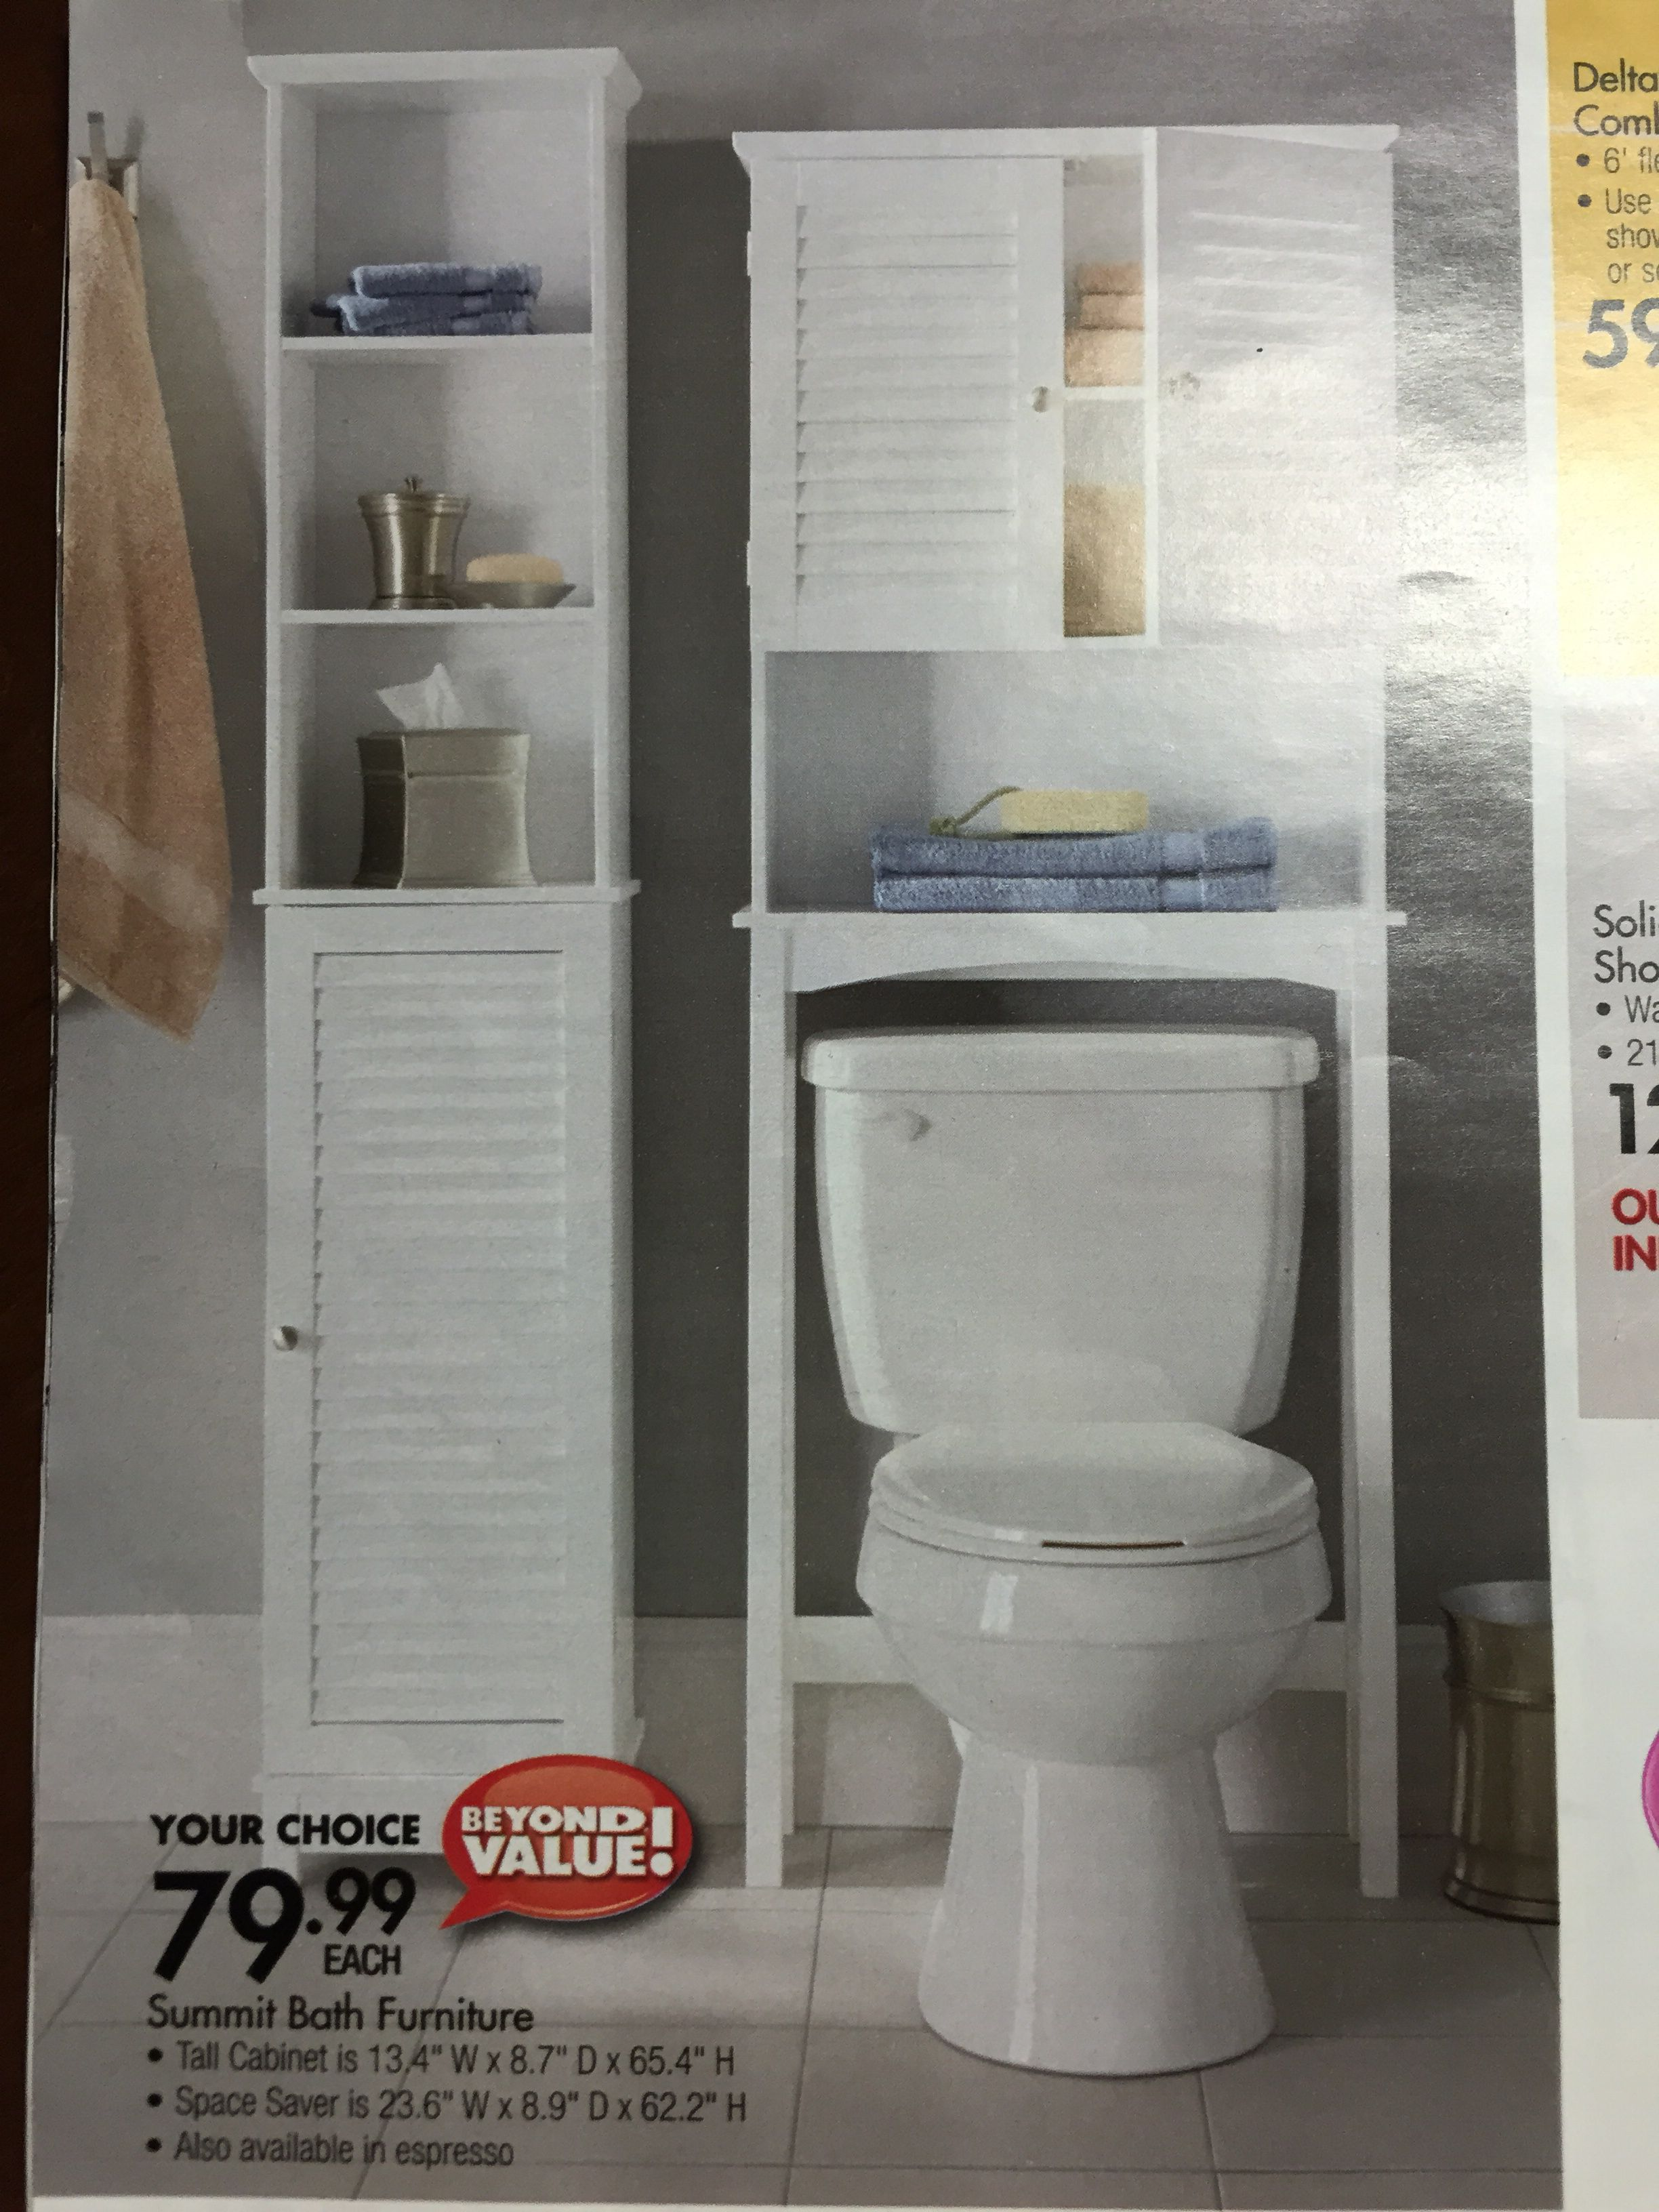 Bed bath and beyond with images bed bath and beyond